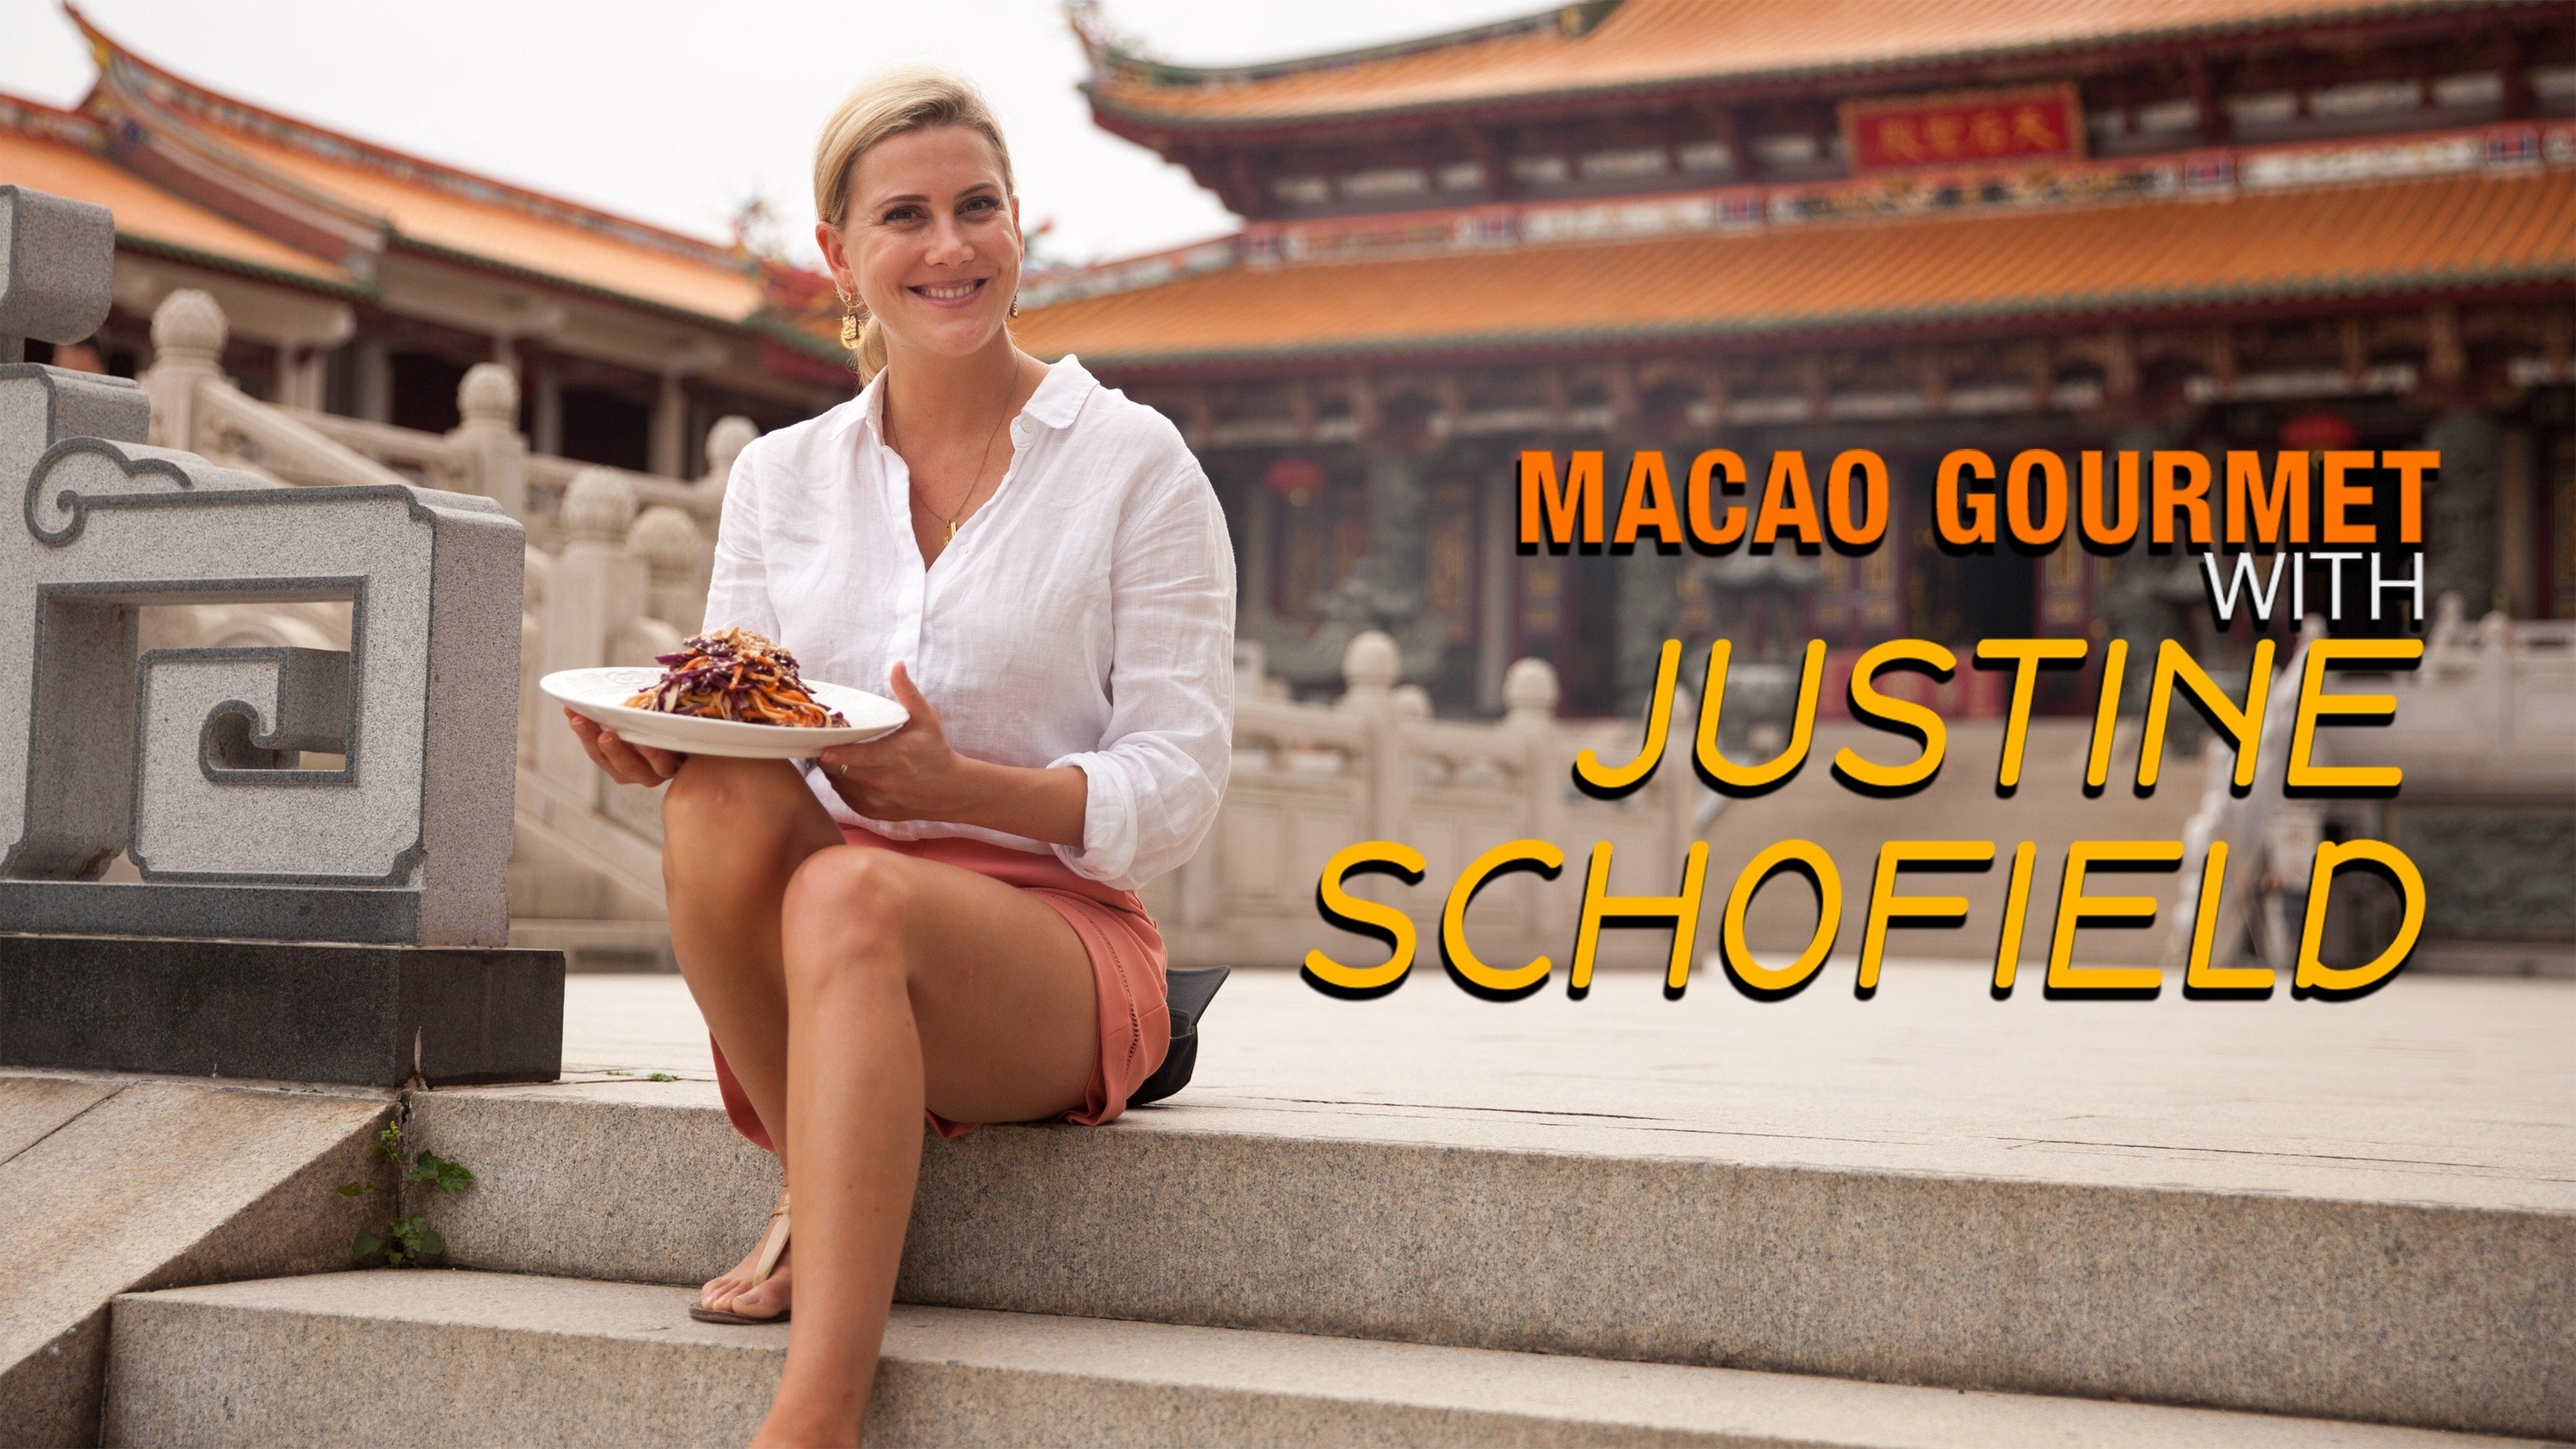 Macao Gourmet with Justine Schofield